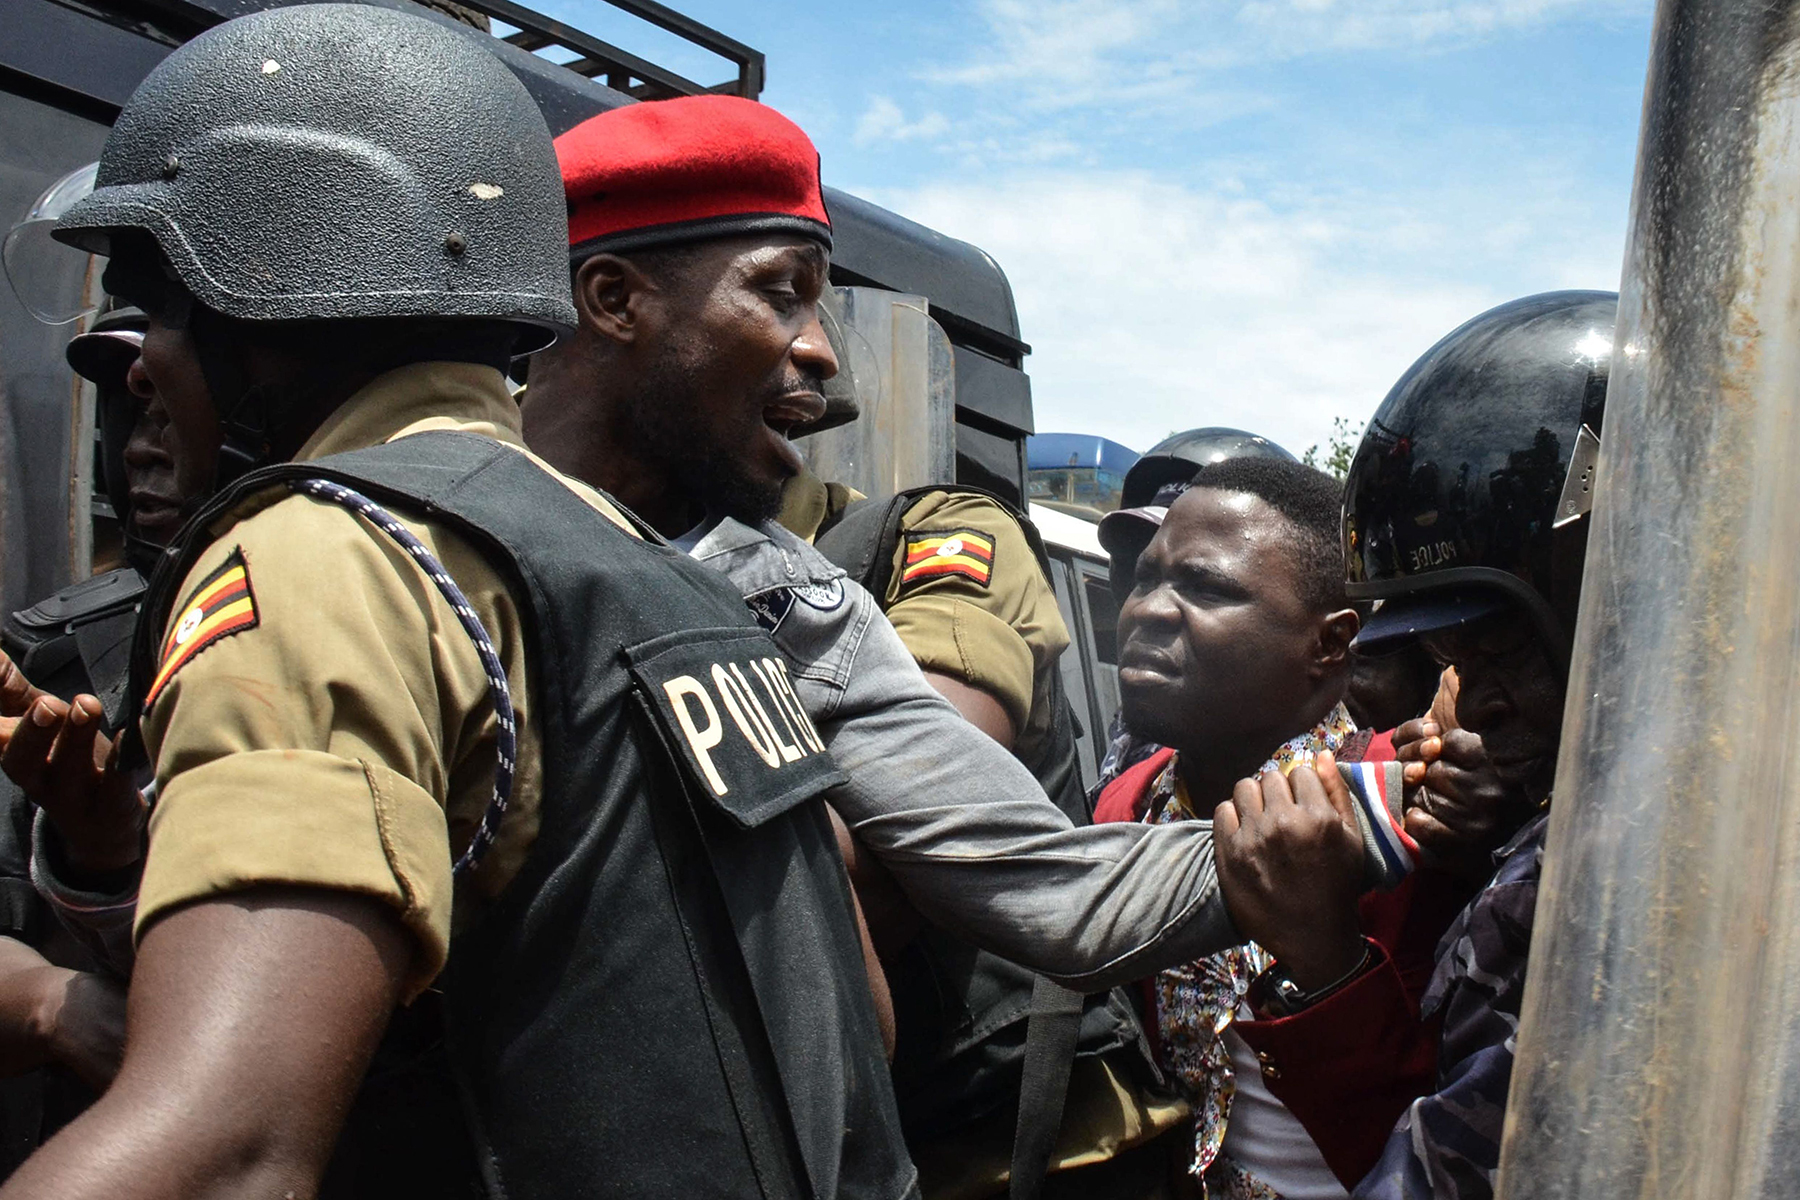 "Ugandan musician turned politician Robert Kyagulanyi, commonly known as Bobi Wine, is arrested by police on his way to a press conference held to announce the cancelation of his show at Busabala, Uganda, on April 22, 2019. - Ugandan police detained pop star-turned-MP Bobi Wine on April 22, 2019 after shutting down one of his concerts and firing tear gas at his fans, the singer's wife and supporters said. ""He has been arrested in Busabala, where he was to address the media on the cancellation of his concert by the police,"" Wine's wife Barbie Itungo Kyagulanyi told AFP, referring to a suburb in southern Kampala. (Photo by Badru KATUMBA / AFP) (Photo credit should read BADRU KATUMBA/AFP via Getty Images)"